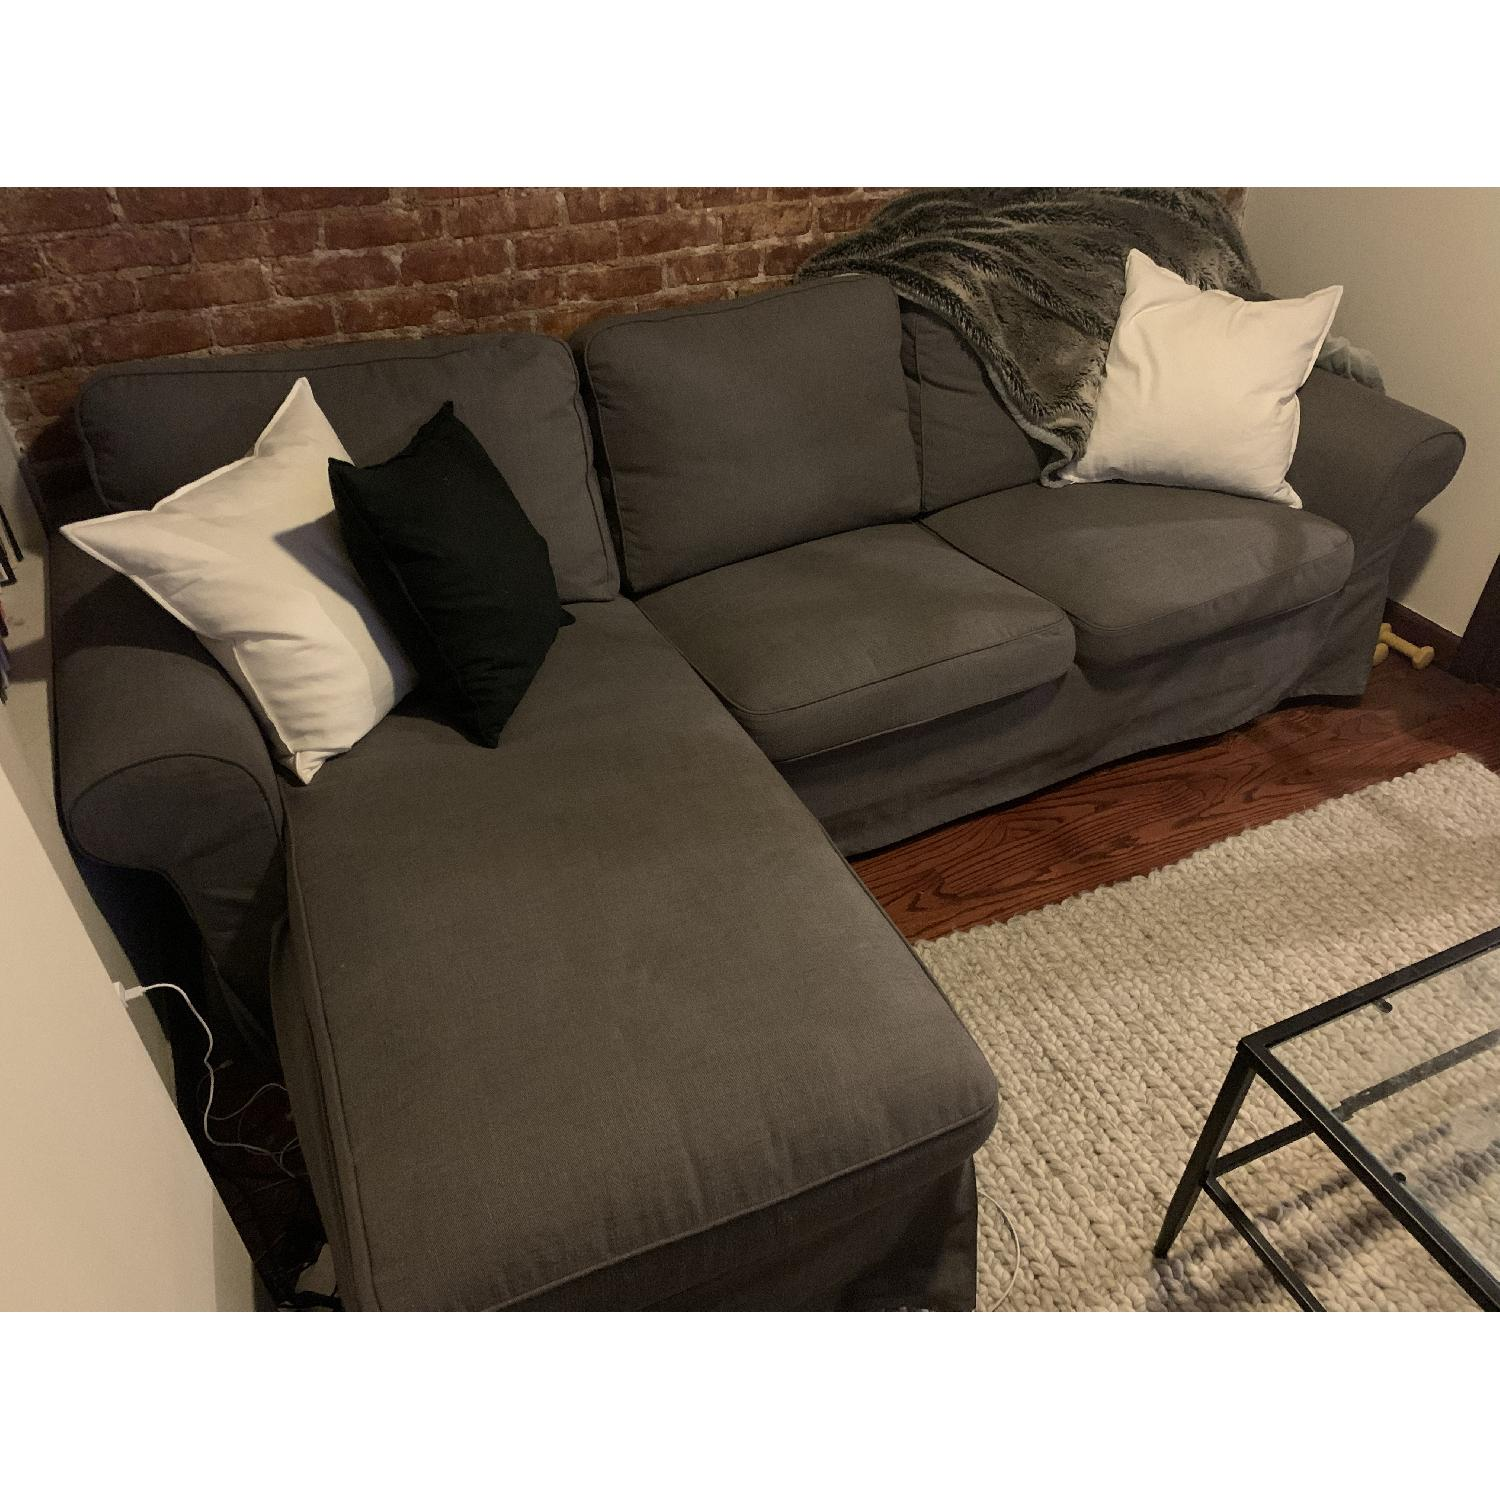 IKEA Dark Grey Couch with Chaise